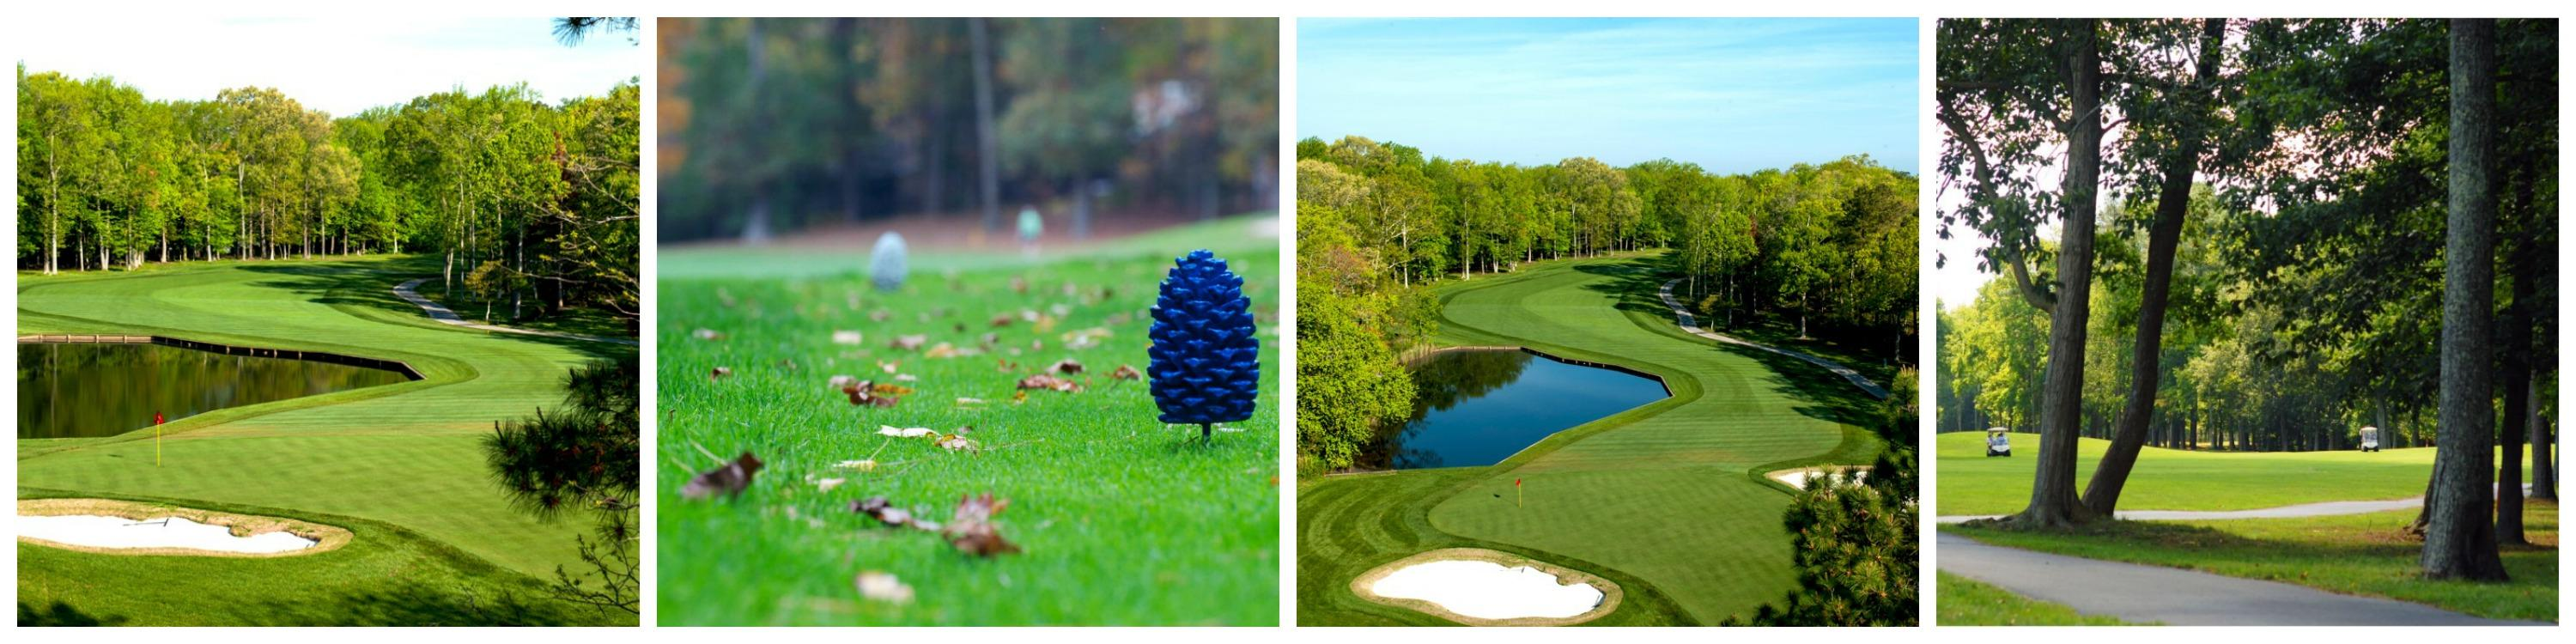 Golf Course Collage